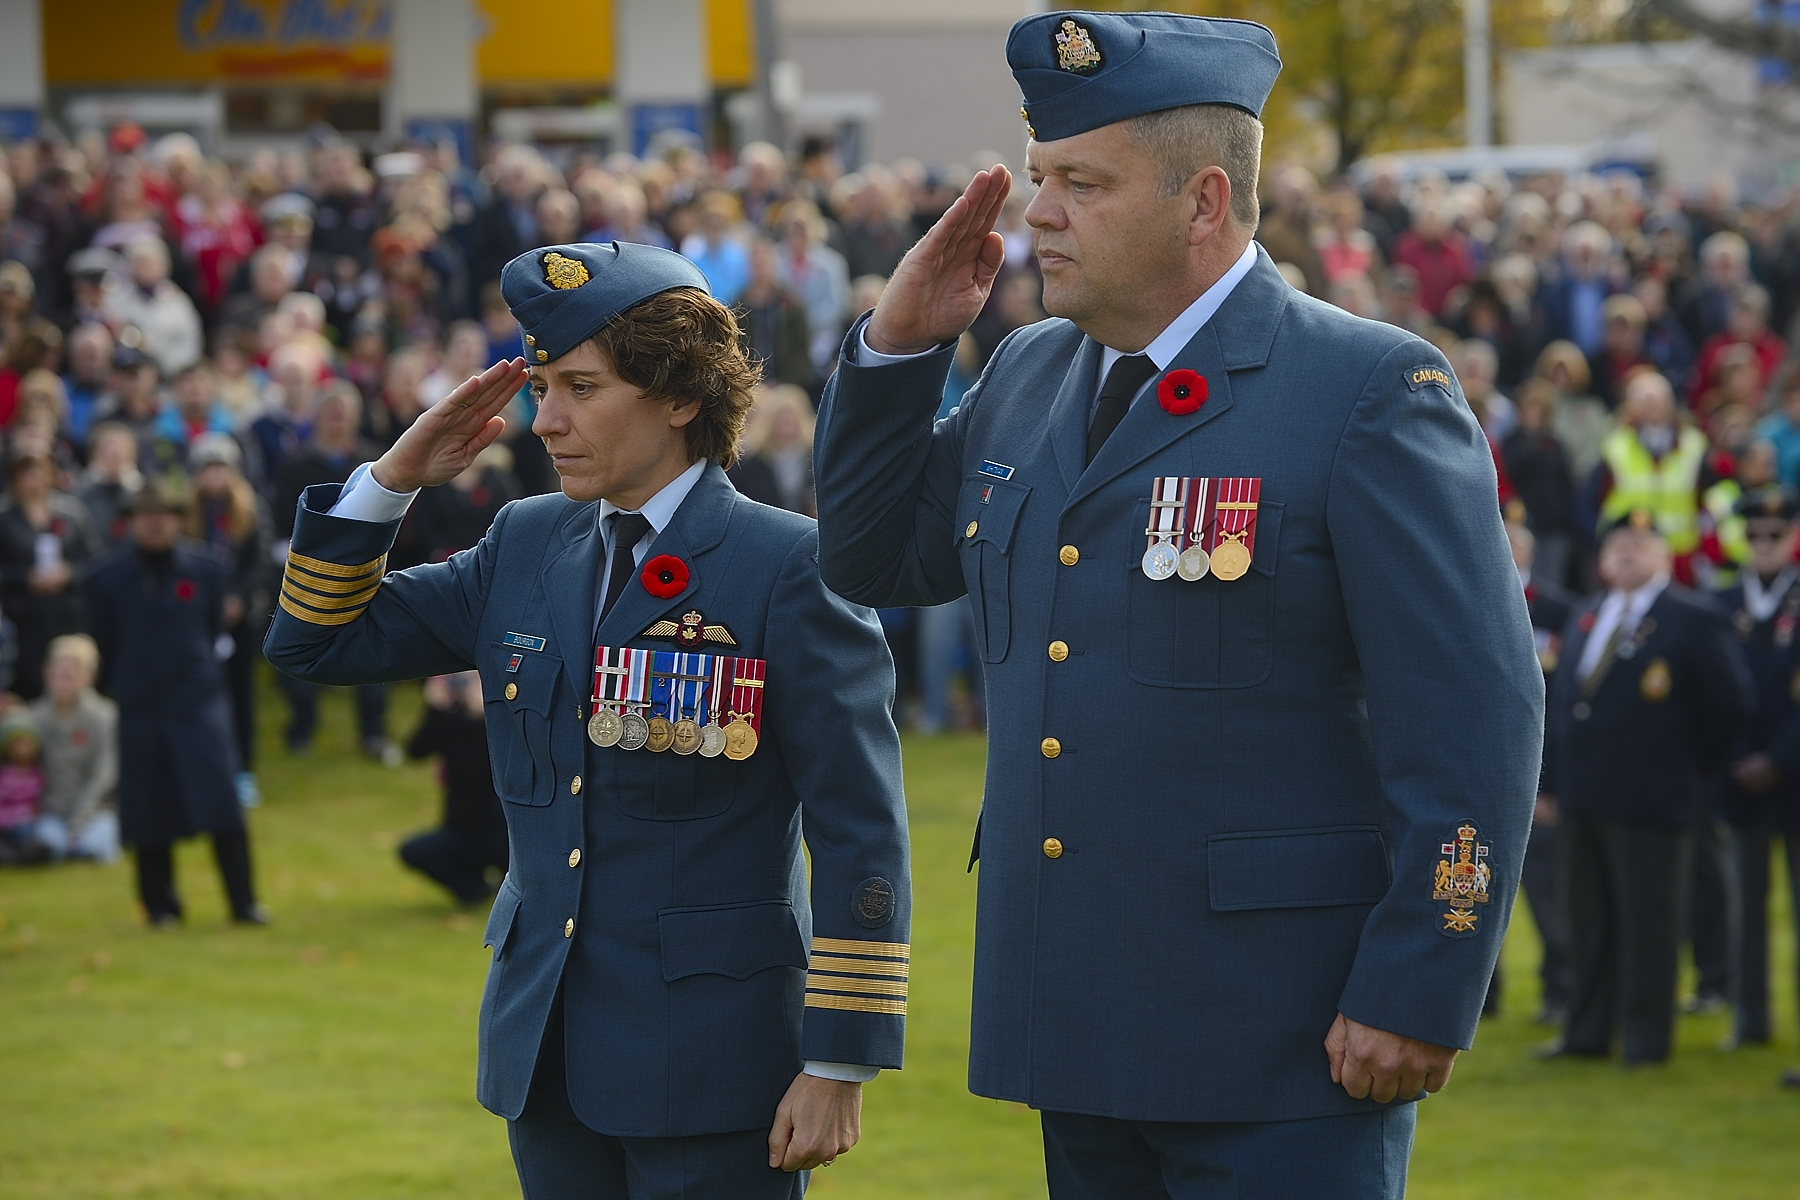 Colonel Lise Bourgon (left), commander of 12 Wing Shearwater, Nova Scotia, and Chief Warrant Officer Michael Whitman, wing chief warrant officer, pay their respects during the Remembrance Day ceremony at Sullivan's Pond in Dartmouth, Nova Scotia, on November 11, 2014. PHOTO: Corporal Chris Boudrias, SW2014-0362-05